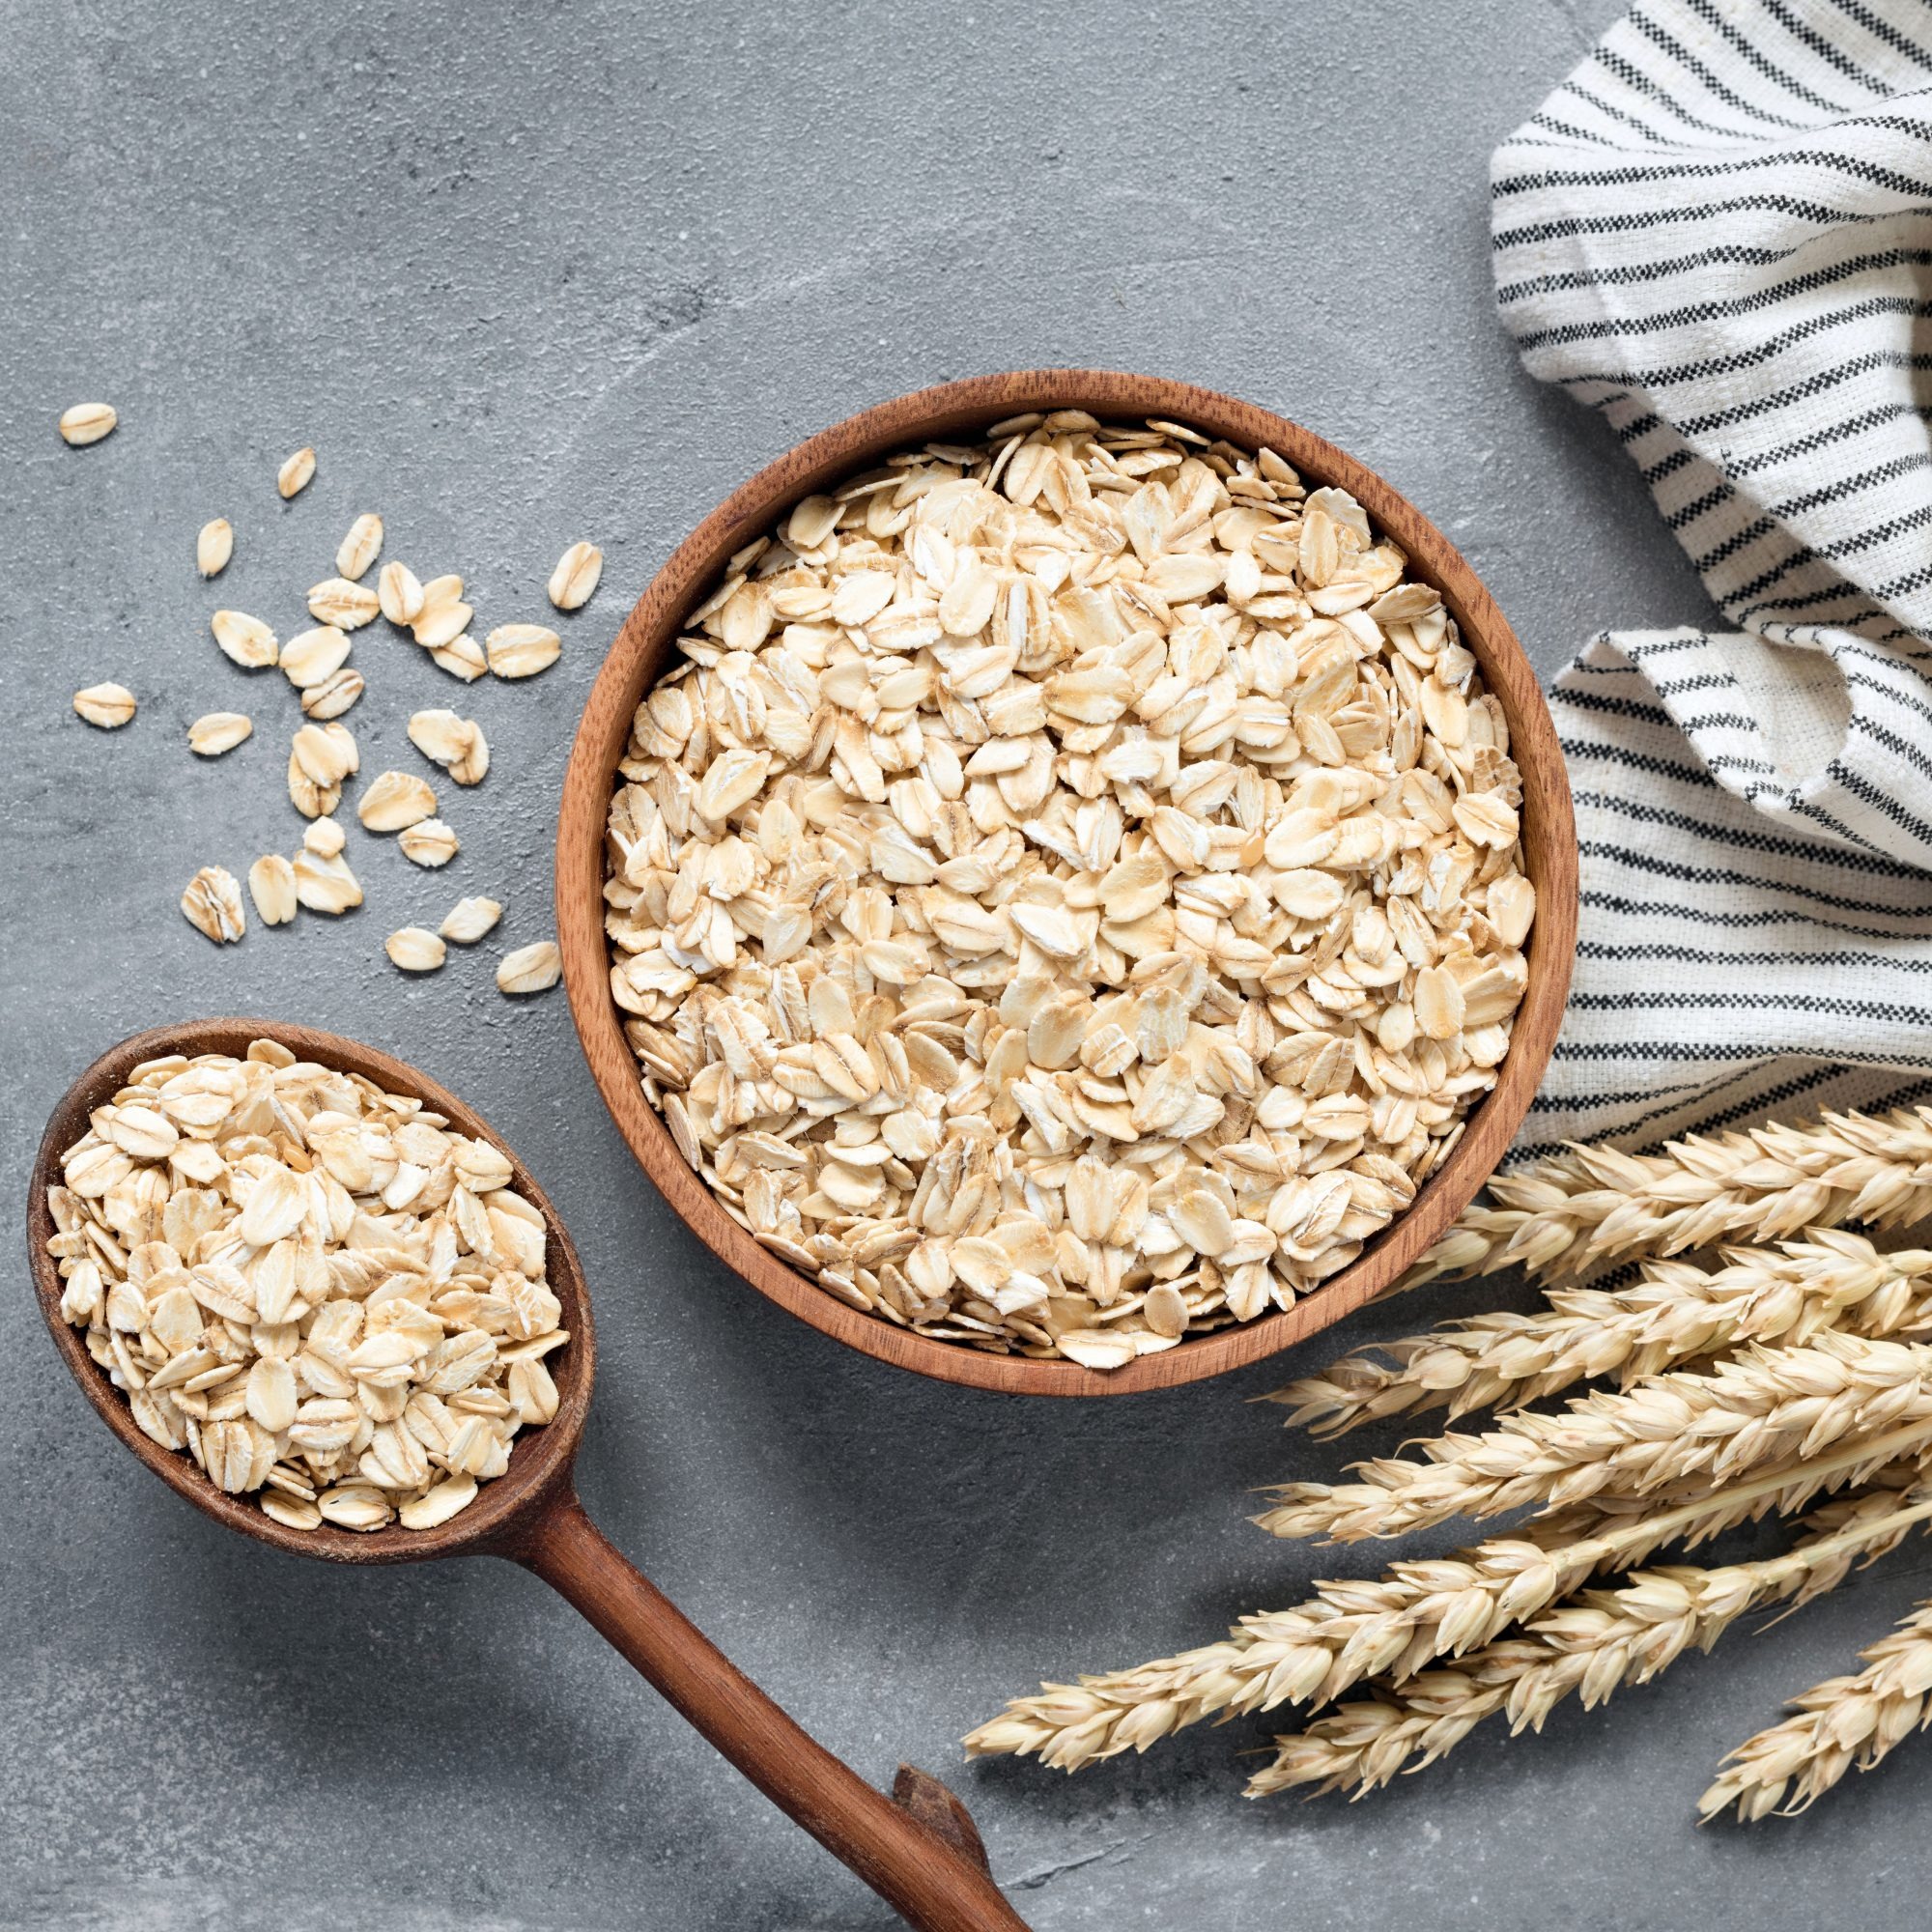 Bowl and spoon full of raw oats